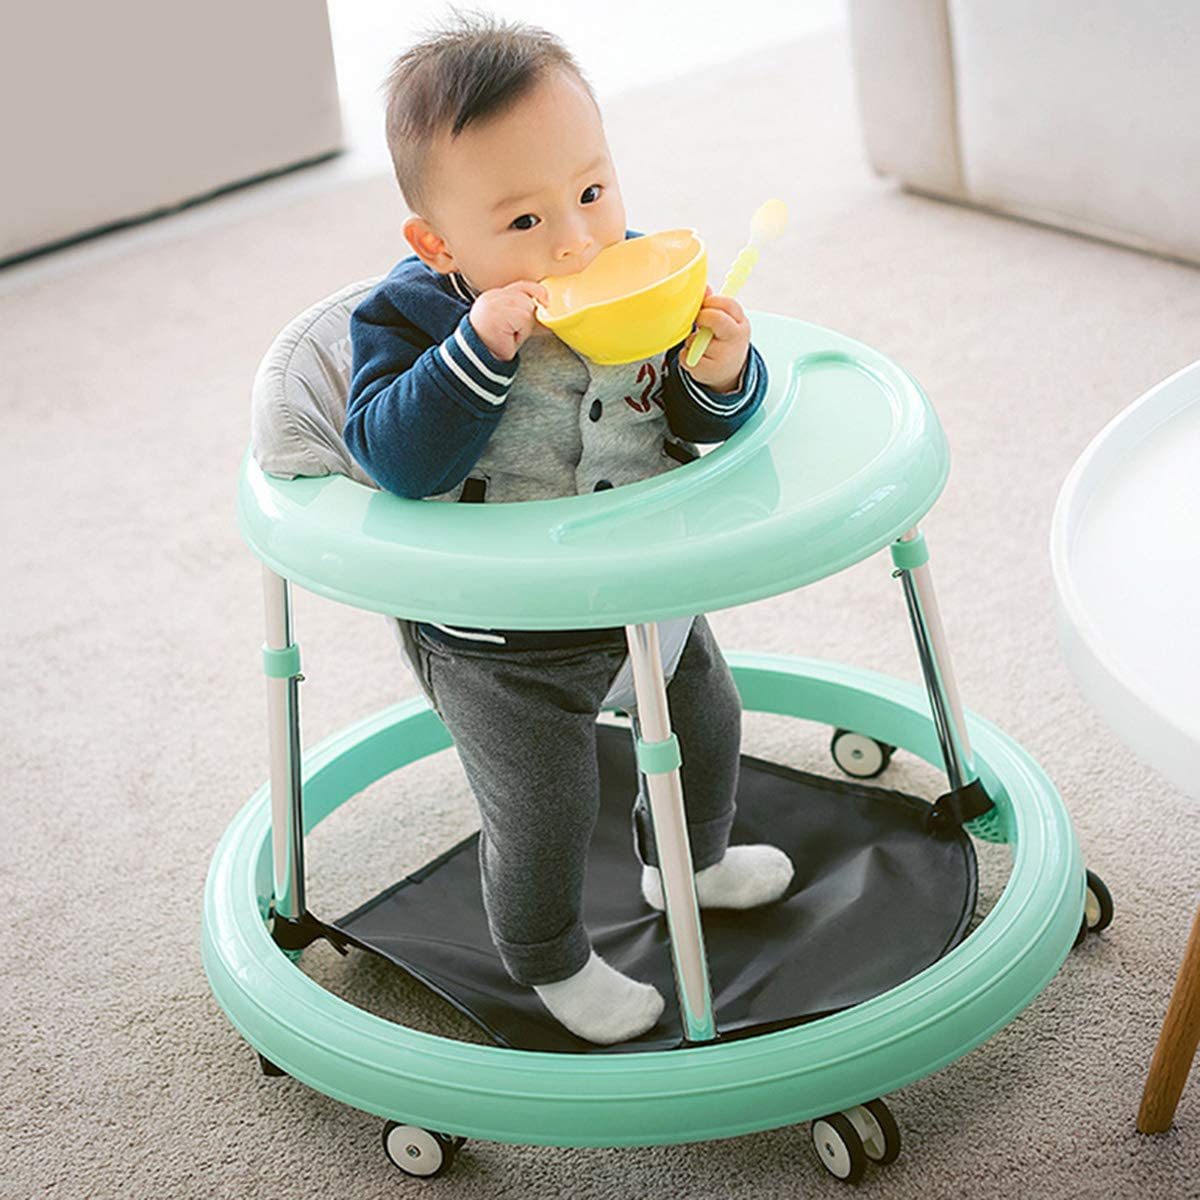 Baby Walker Car with High Stability Balance Bike Height Adjustable Multi-Function Walkers for Baby